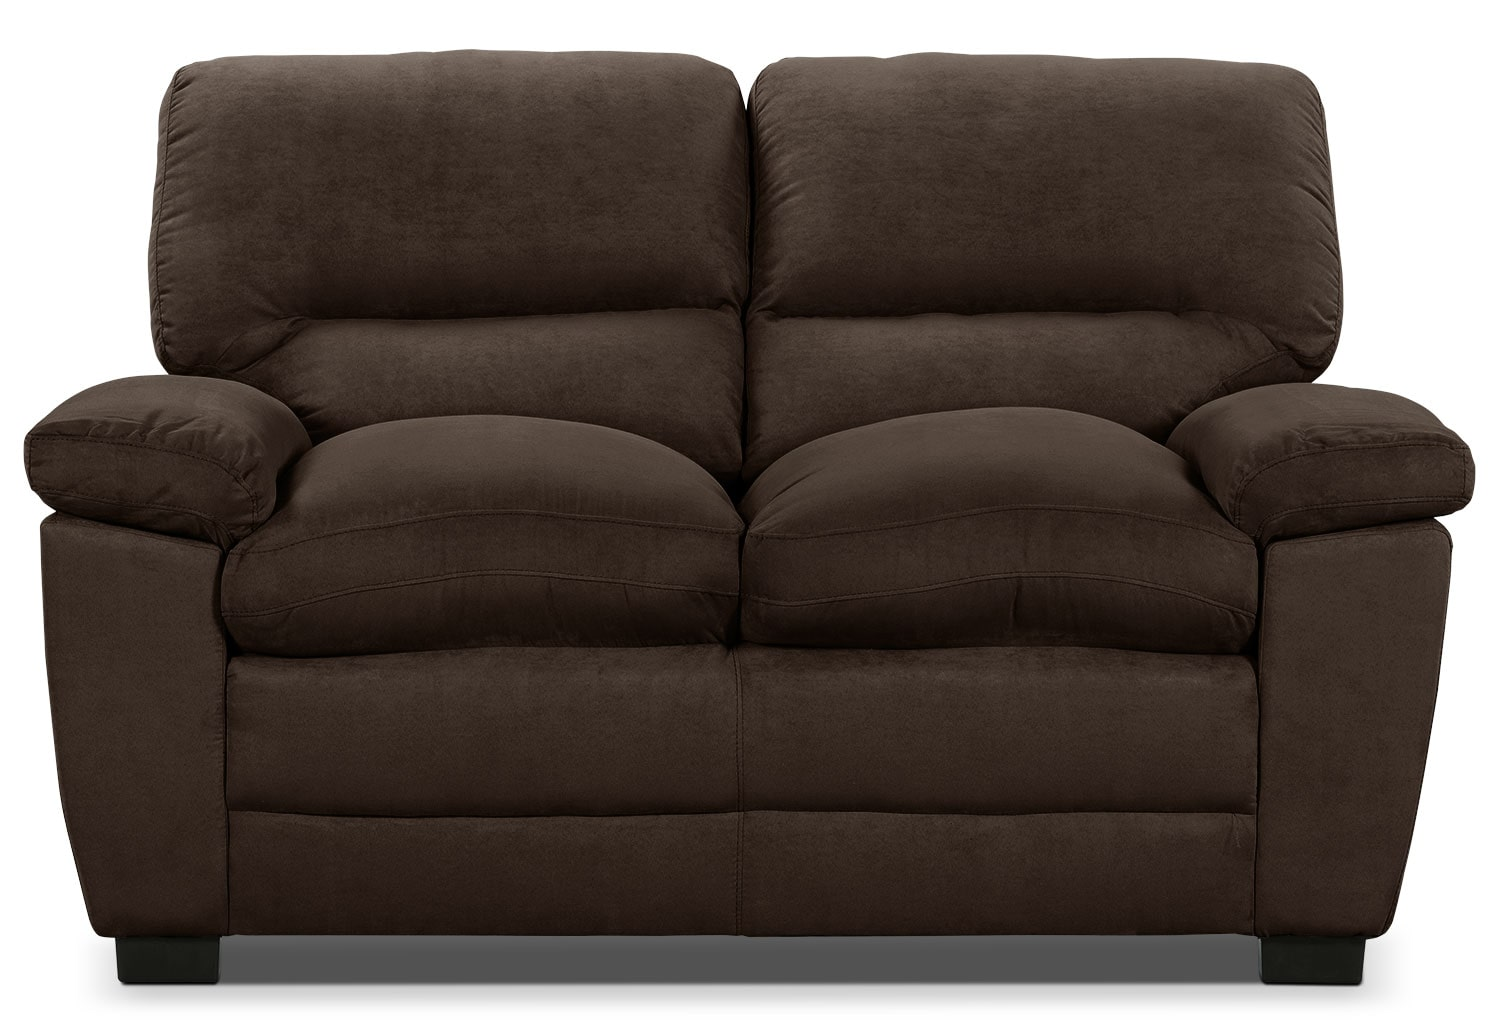 Peyton Microsuede Loveseat - Chocolate